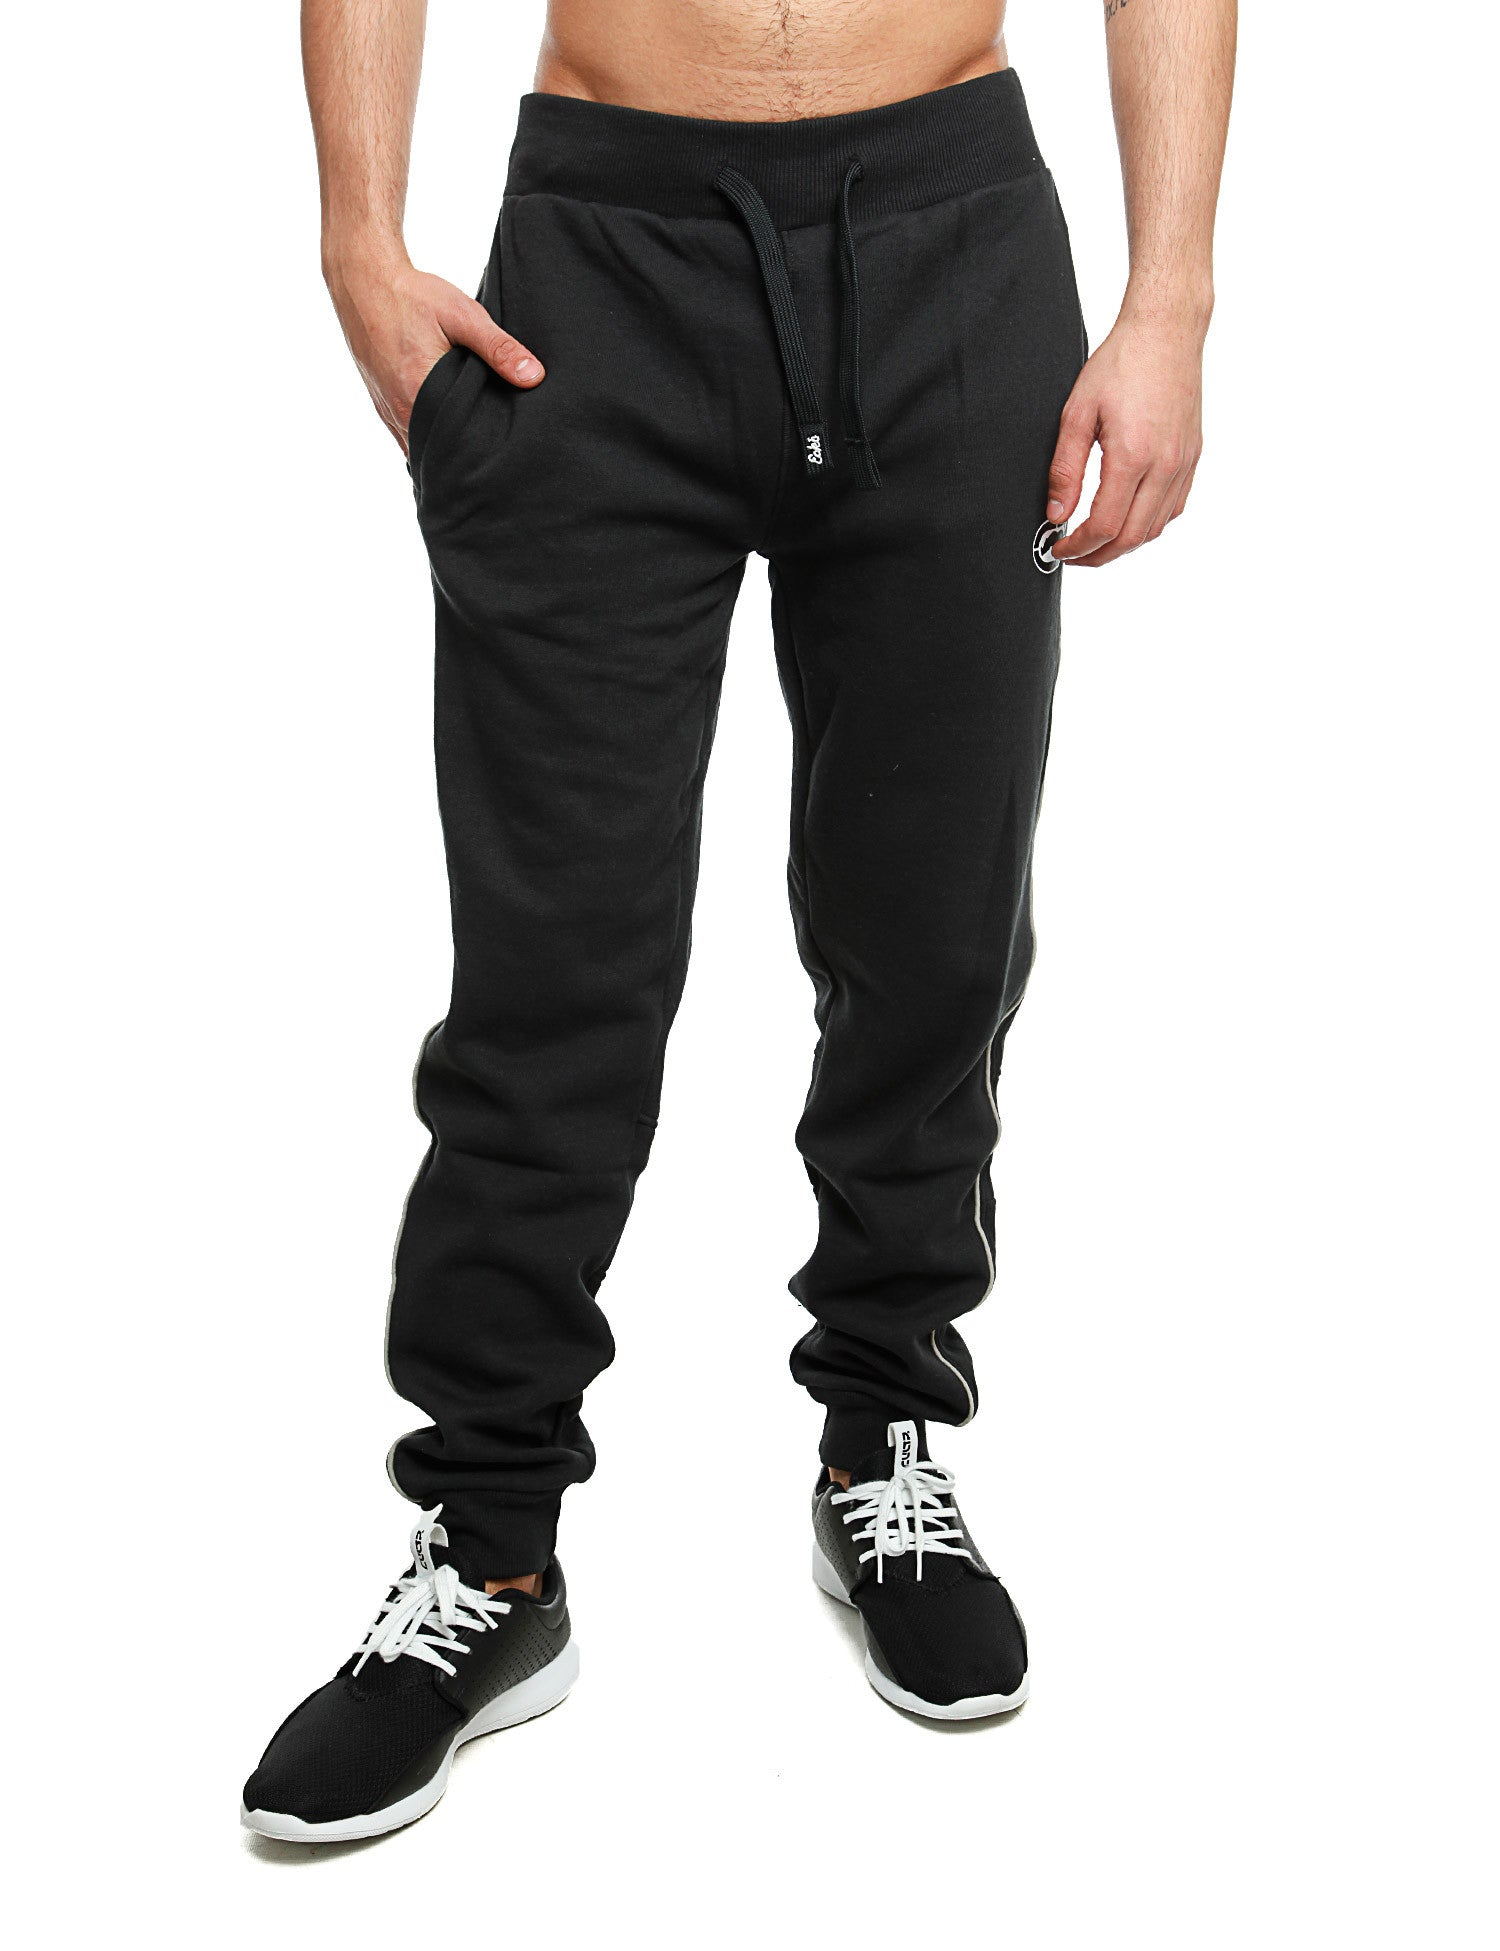 Image of Ecko Sweatpants Docklands  Black